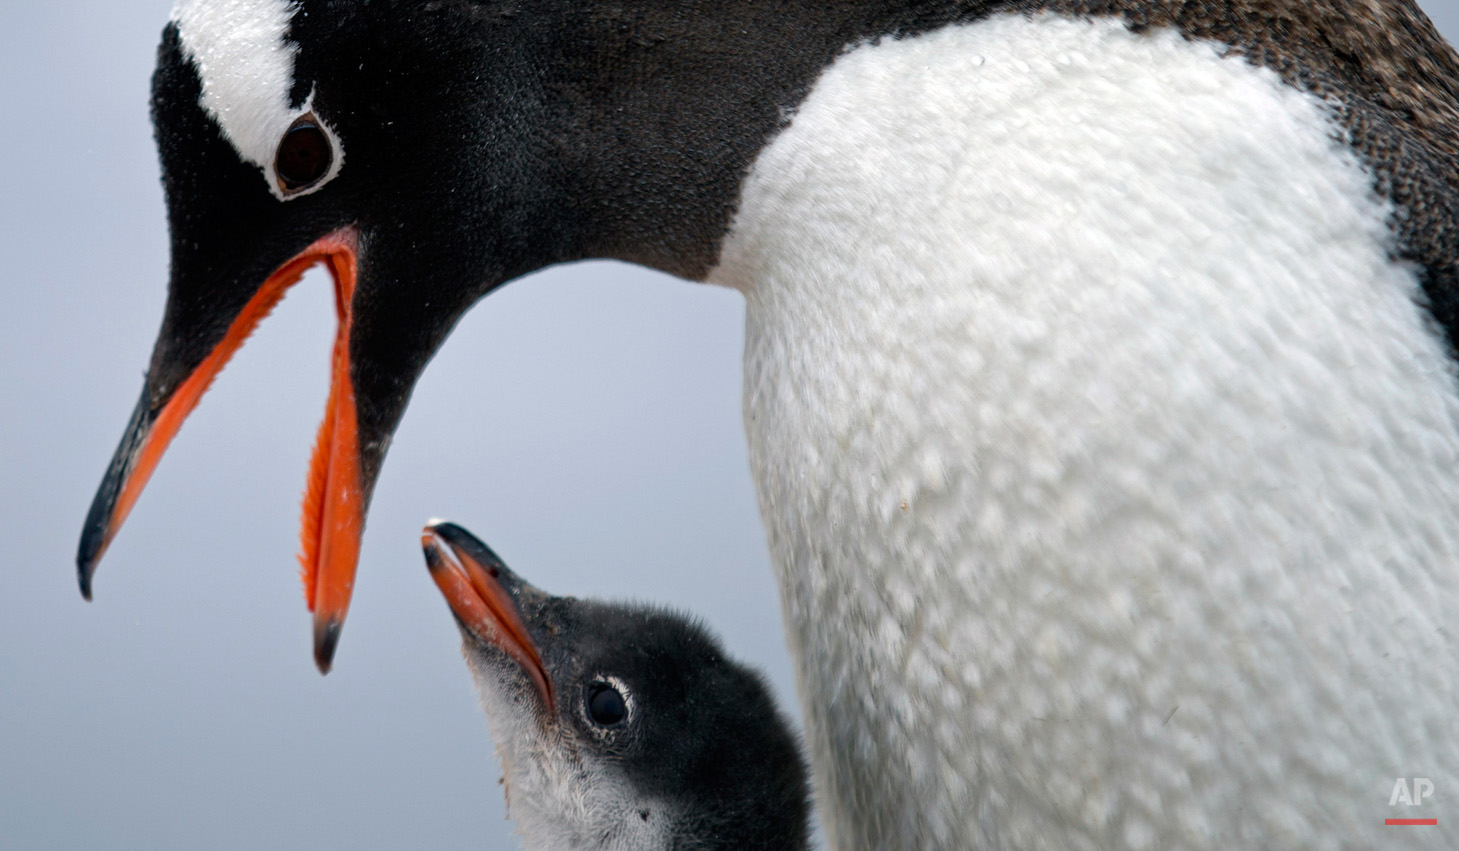 "In this Jan. 22, 2015, photo, a Gentoo penguin feeds its baby at Station Bernardo O'Higgins in Antarctica. ""To understand many aspects in the diversity of animals and plants it's important to understand when continents disassembled,î said Richard Spikings, a research geologist at the University of Geneva. (AP Photo/Natacha Pisarenko)"